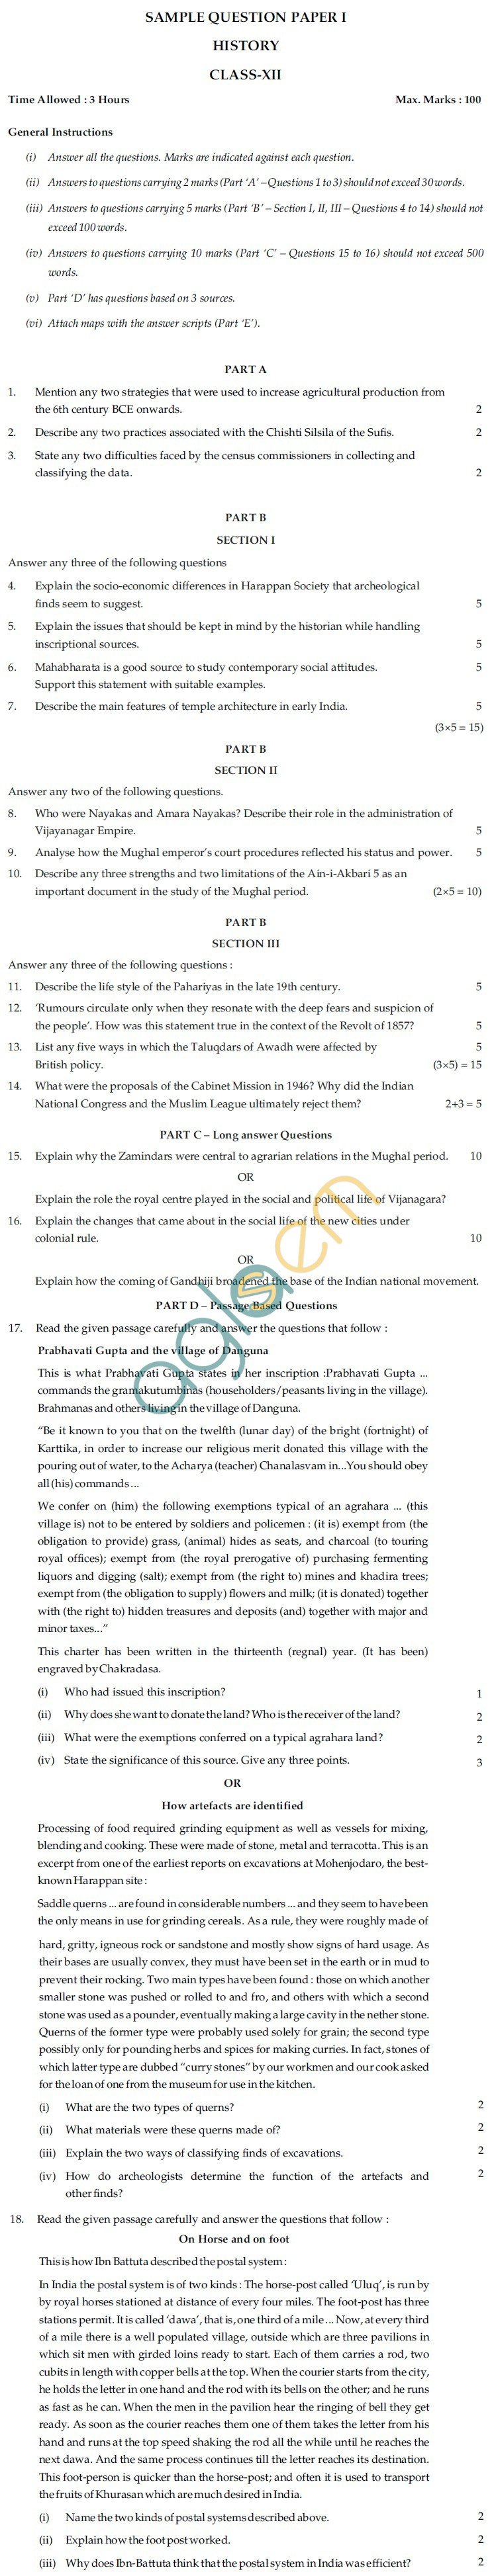 CBSE Board Exam Sample Question Papers Class XII - History